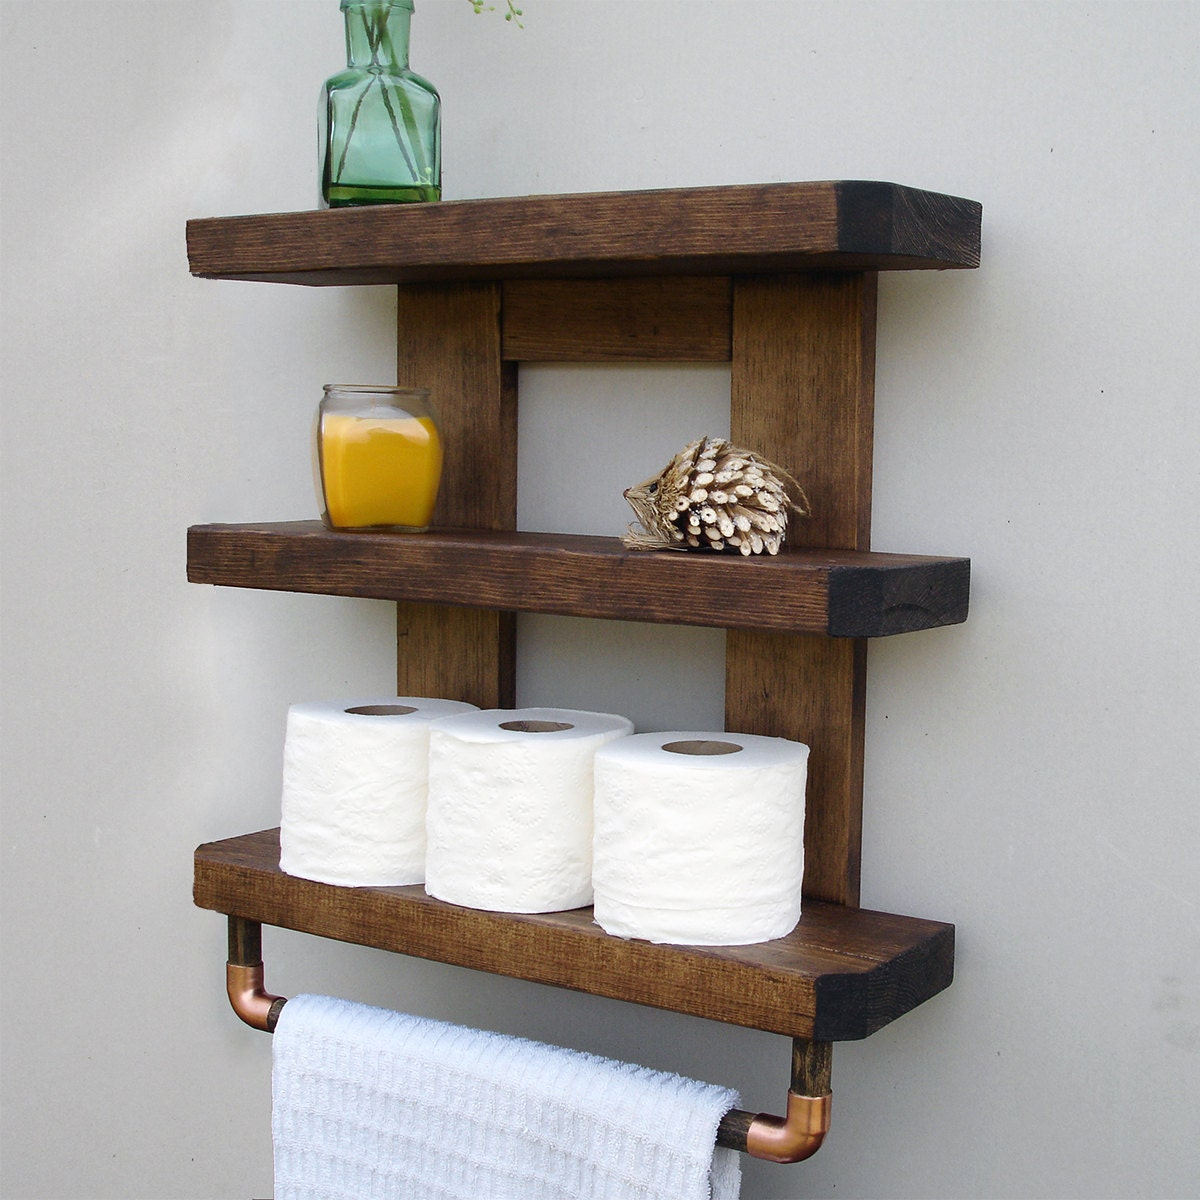 rustic bathroom shelves etsy rh etsy com wooden bathroom shelves ikea wooden bathroom shelves lowes